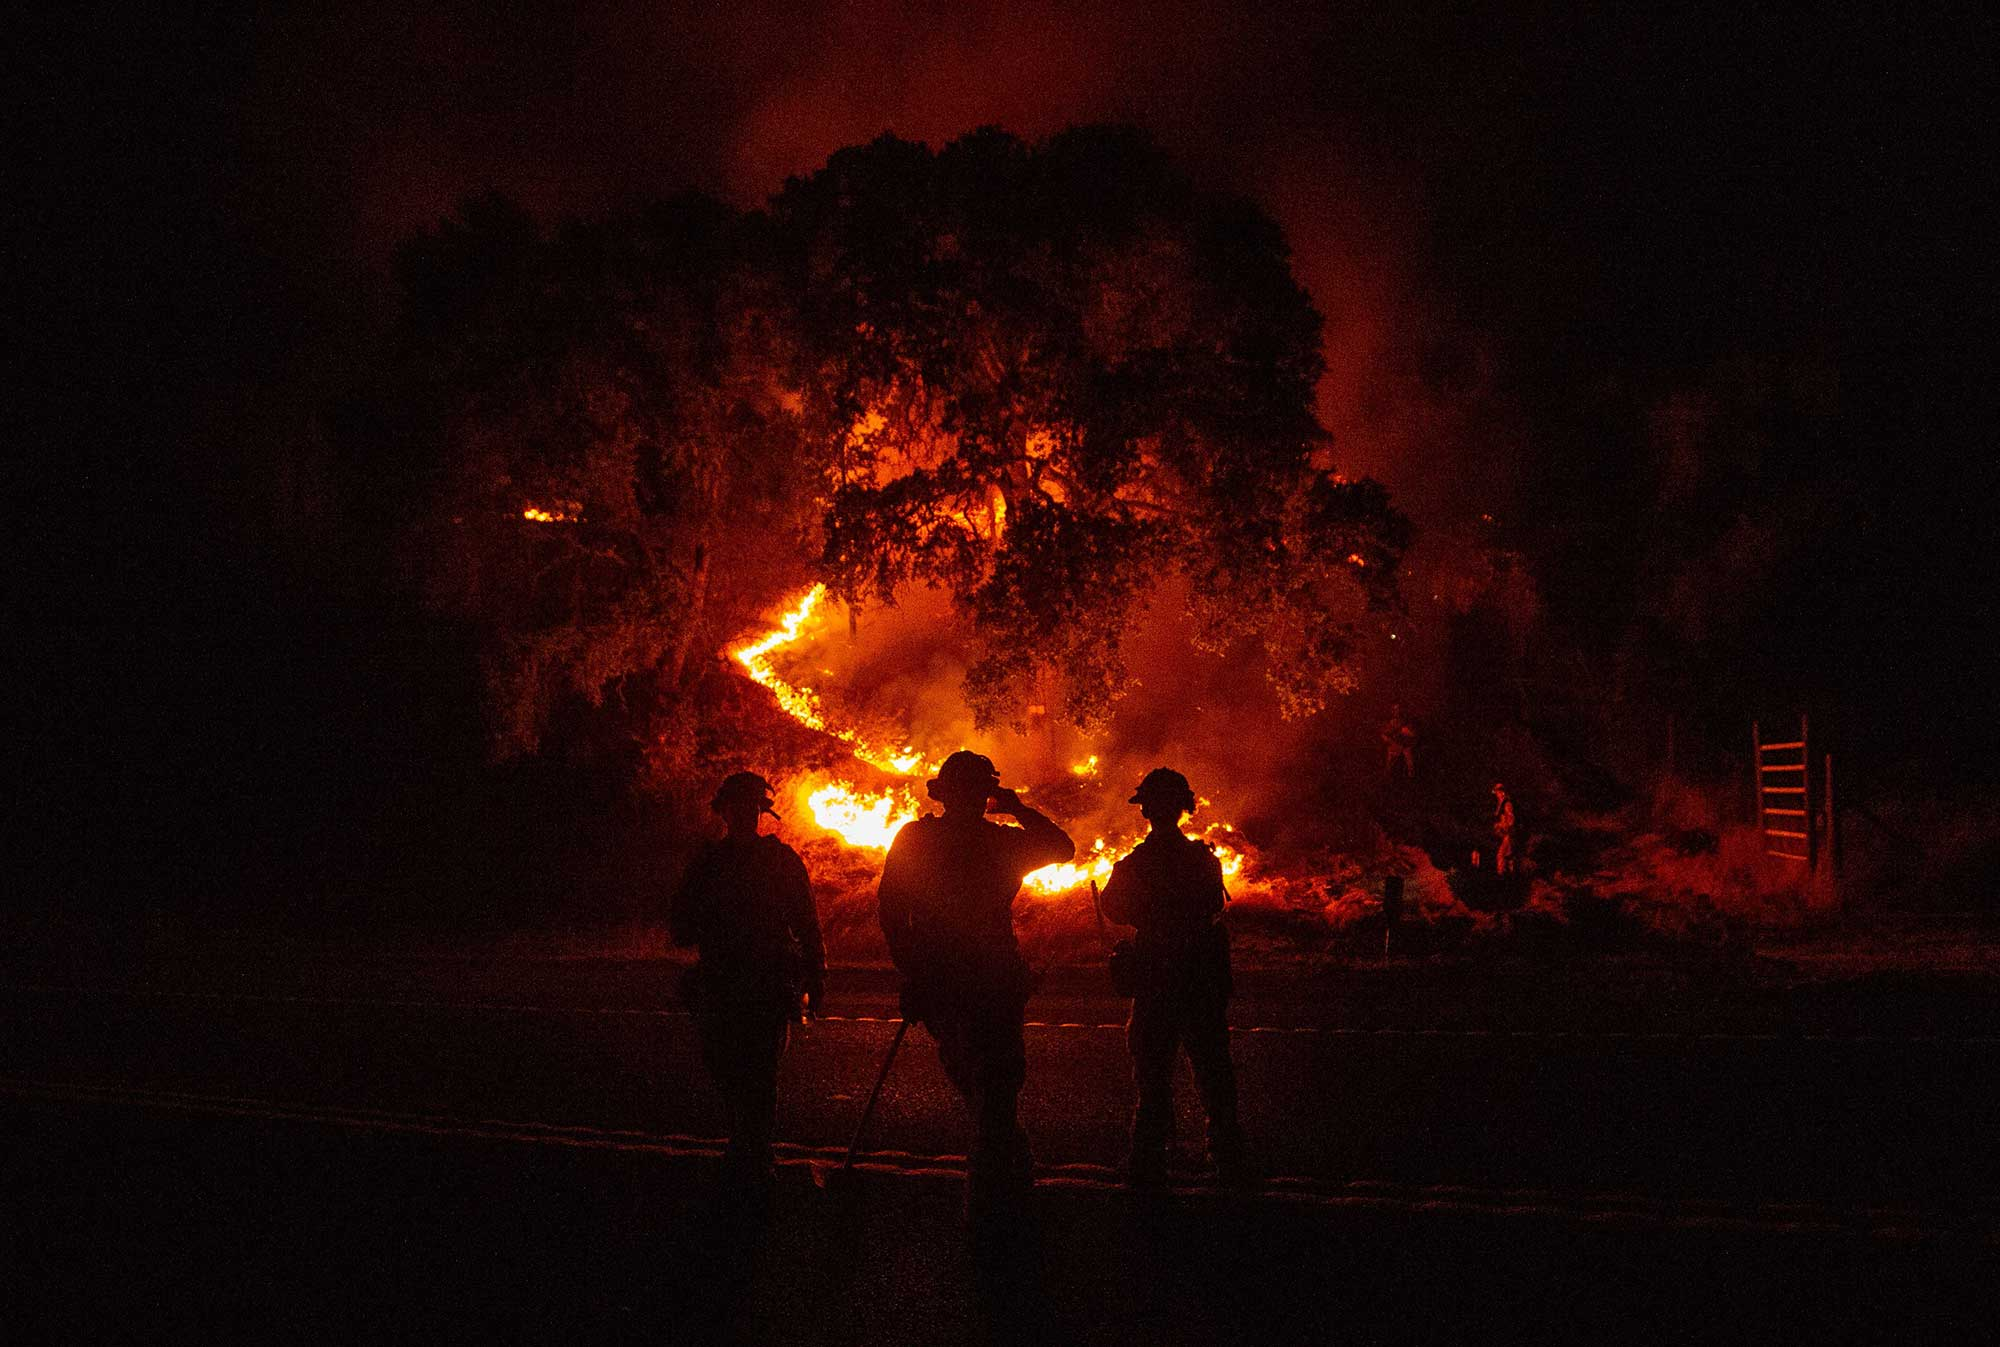 <div class='meta'><div class='origin-logo' data-origin='none'></div><span class='caption-text' data-credit='JOSH EDELSON/AFP/Getty Images'>Firefighters watch a back burn during the Mendocino Complex fire in Upper Lake, California on July 31, 2018.</span></div>